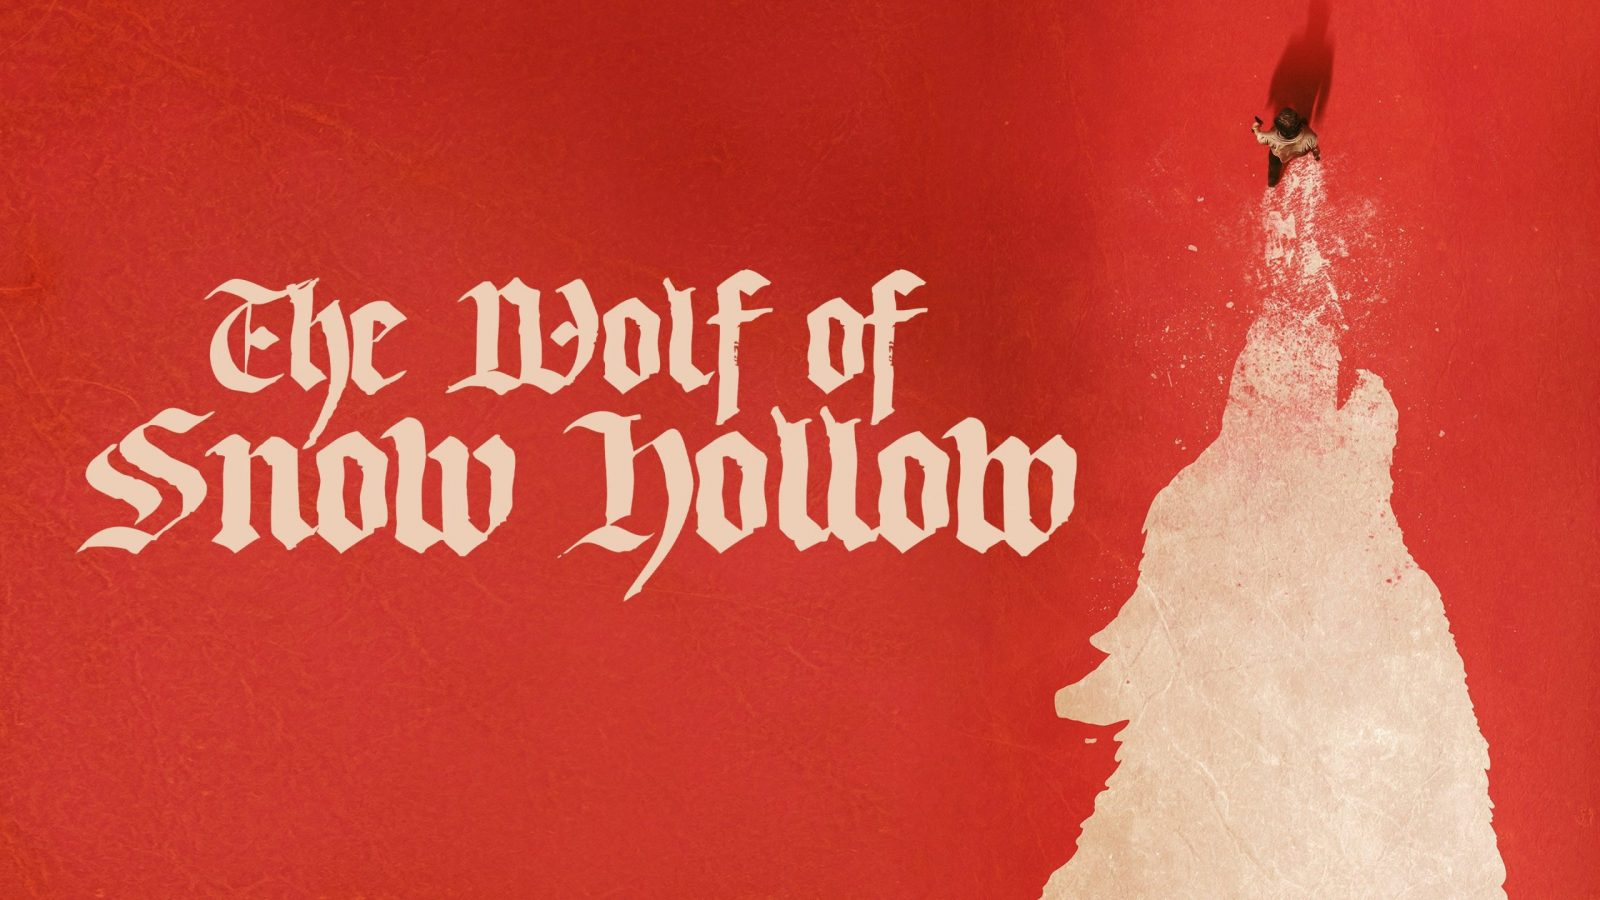 The Wolf Of Snow Hollow Ending Explained